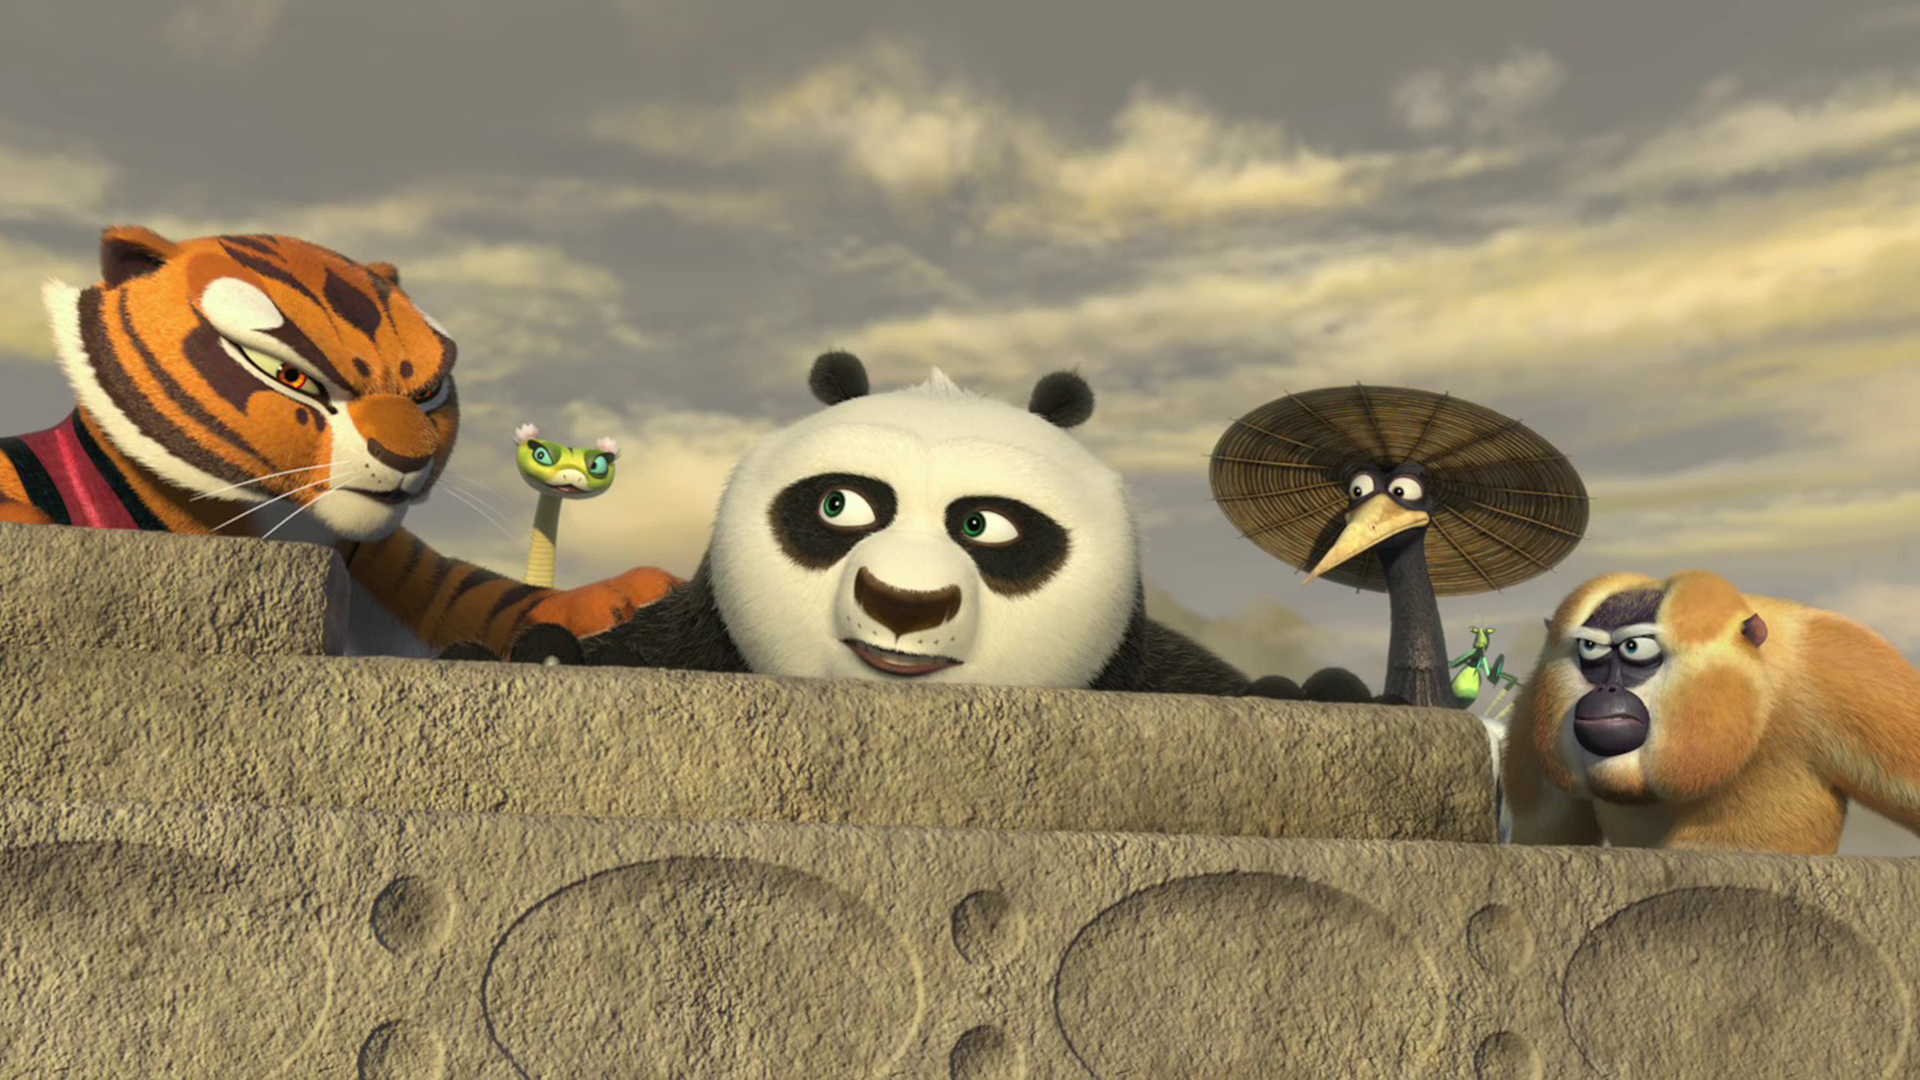 kung-fu-panda-backgrounds-wallpapers-hd | wallpaper.wiki